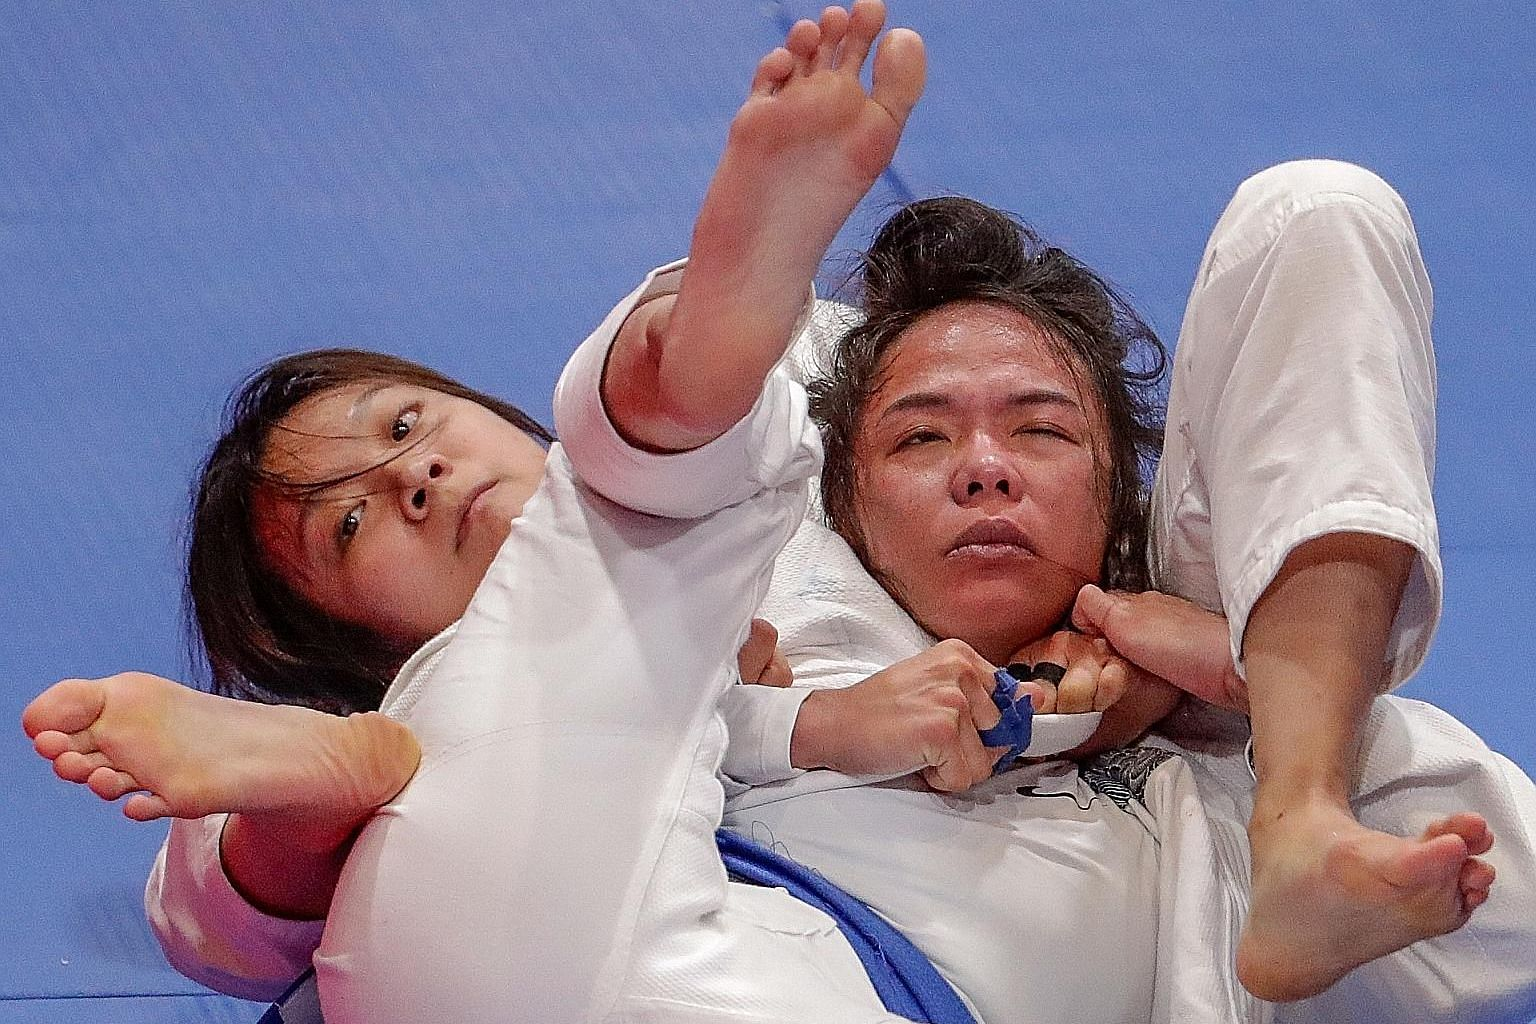 Constance Lien made an early sweep before finishing off Vietnam's Nguyen Ngoc Tu with a submission choke in the jiu-jitsu Under-62kg final. PHOTO: SNOC